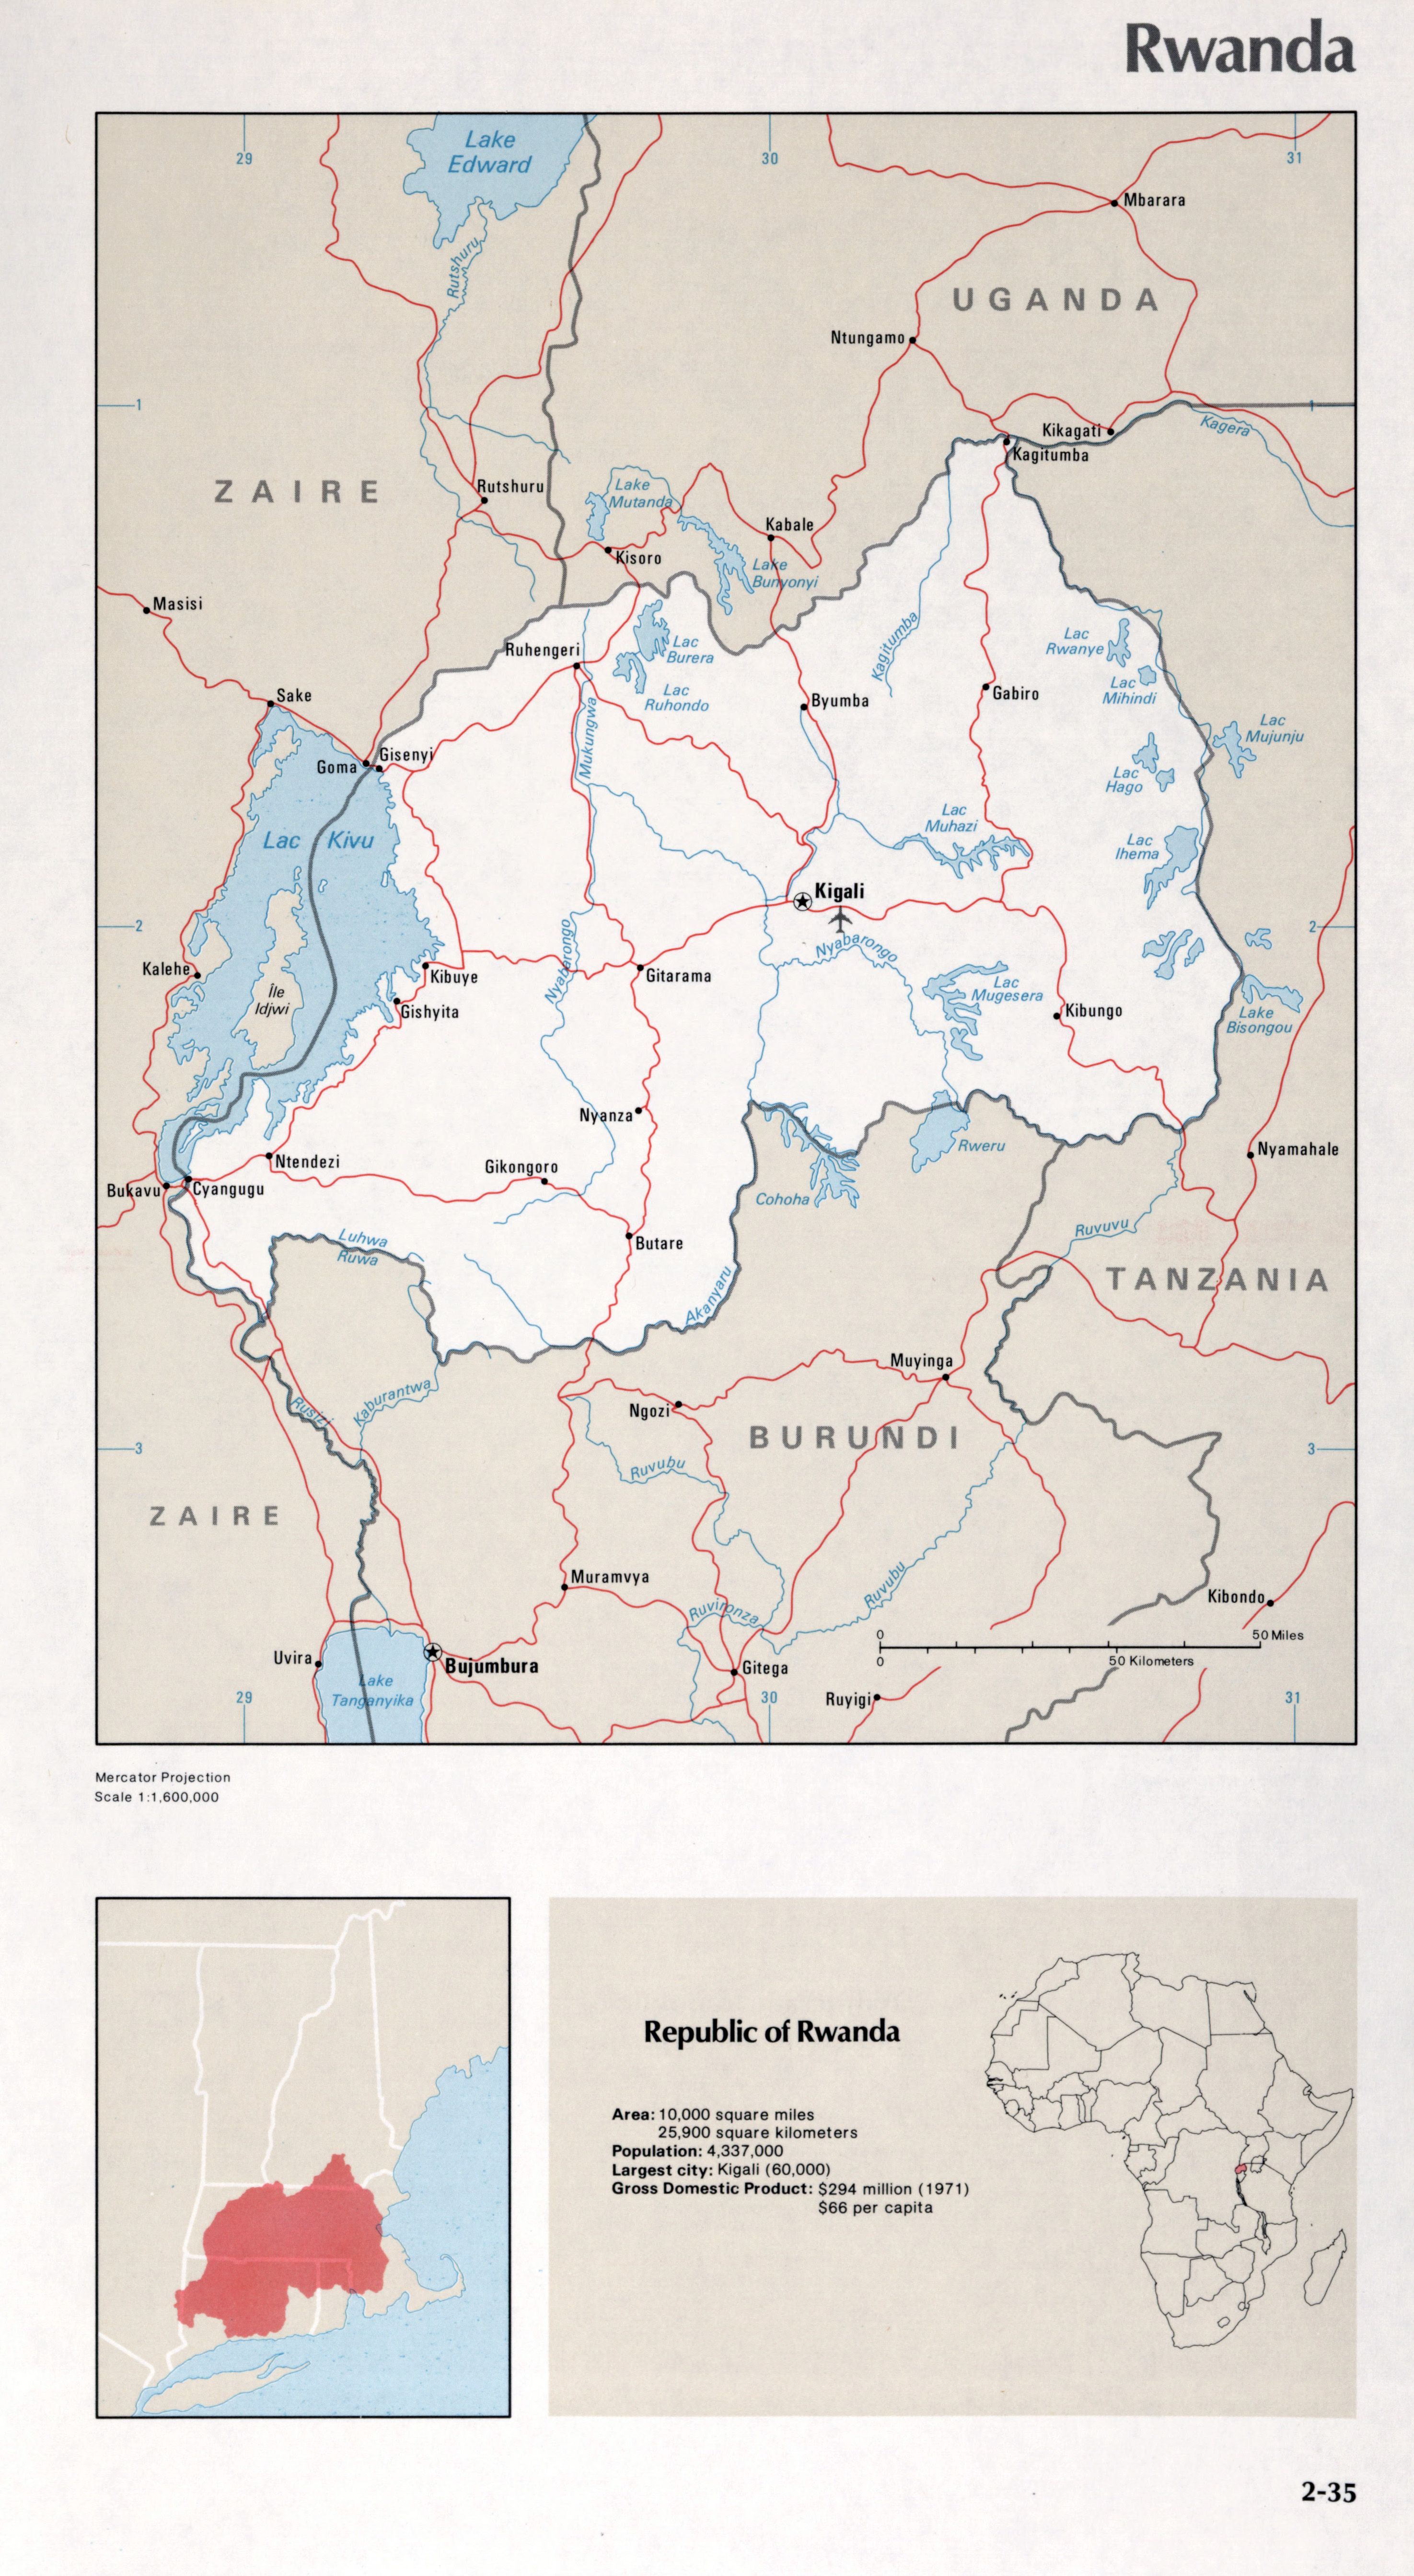 Image of: Map Of Rwanda 2 35 Africa Maps Of The World S Nations World Mapsland Maps Of The World